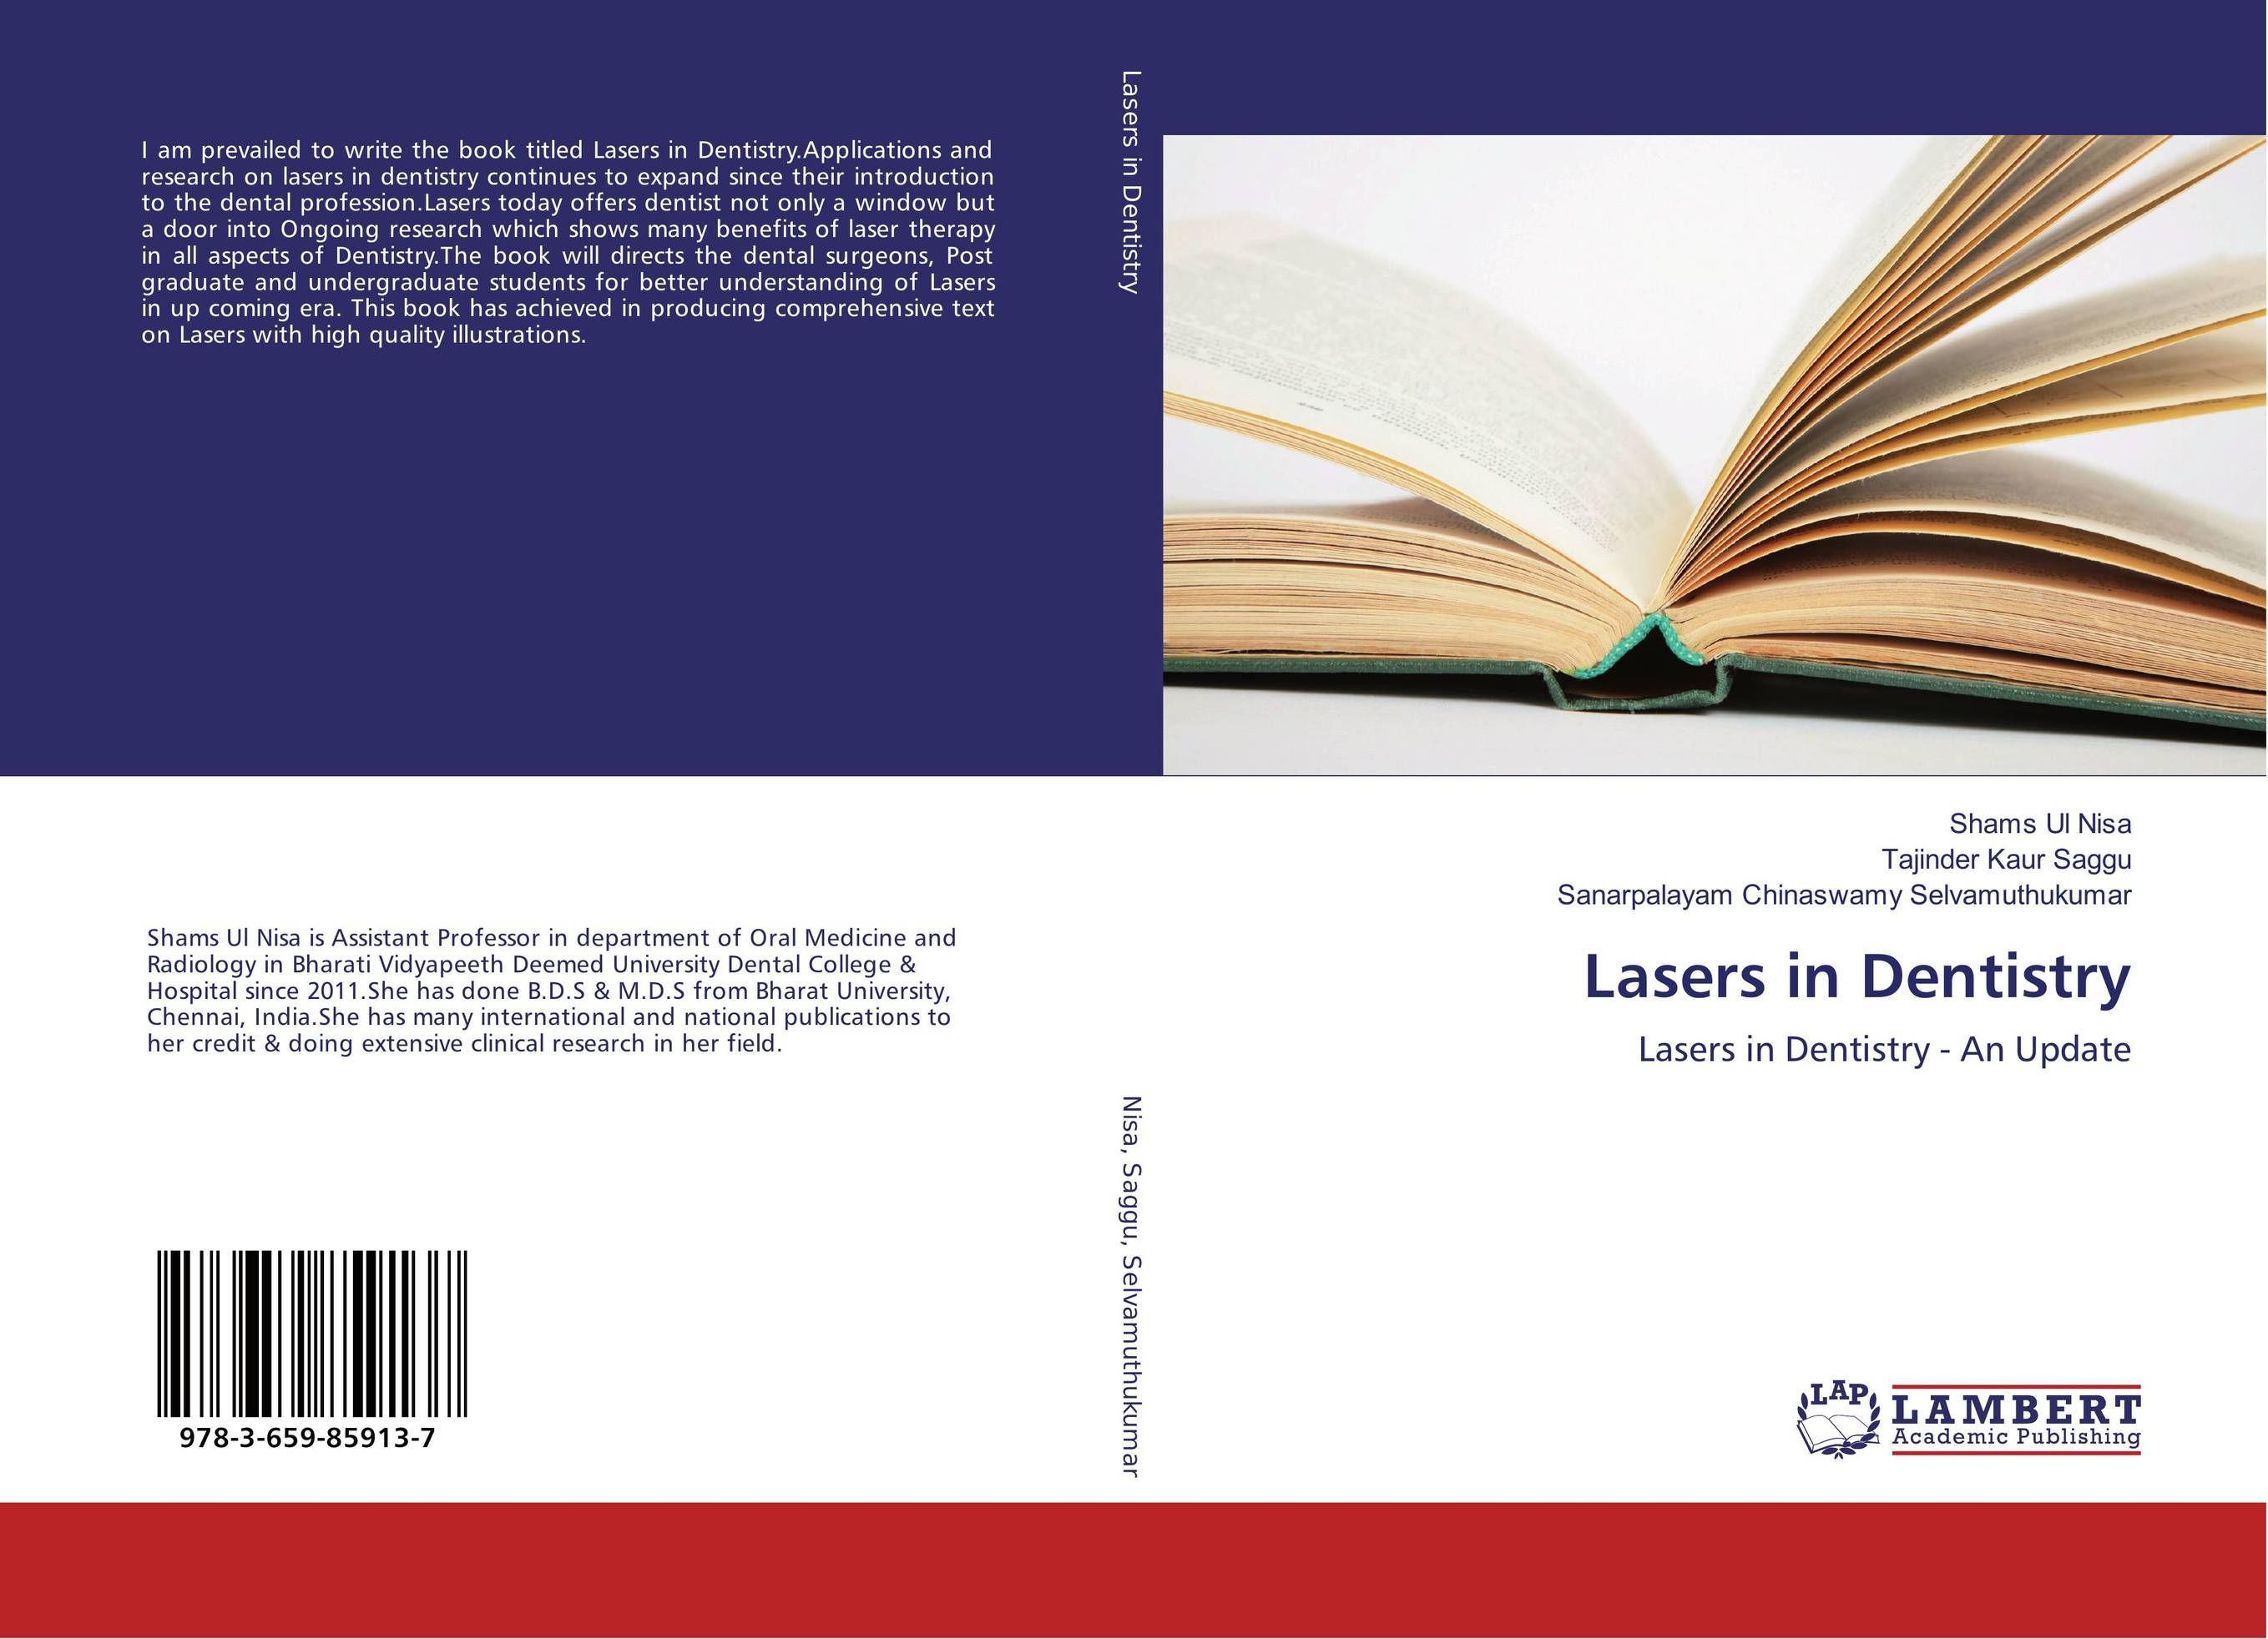 Lasers in Dentistry lasers in the field of dentistry